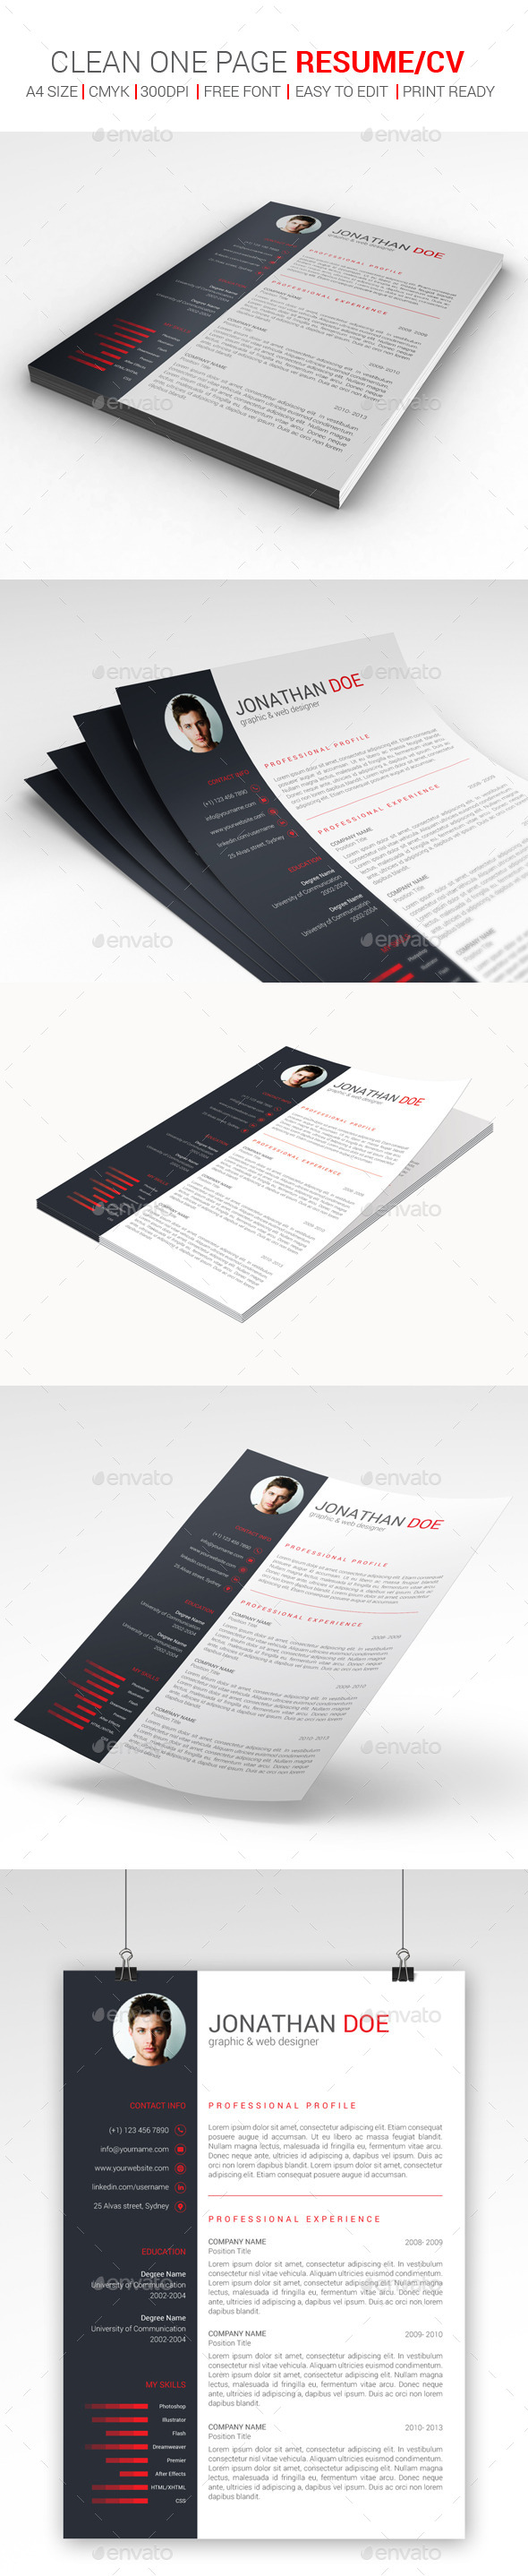 GraphicRiver Clean One Page Resume CV 9818702